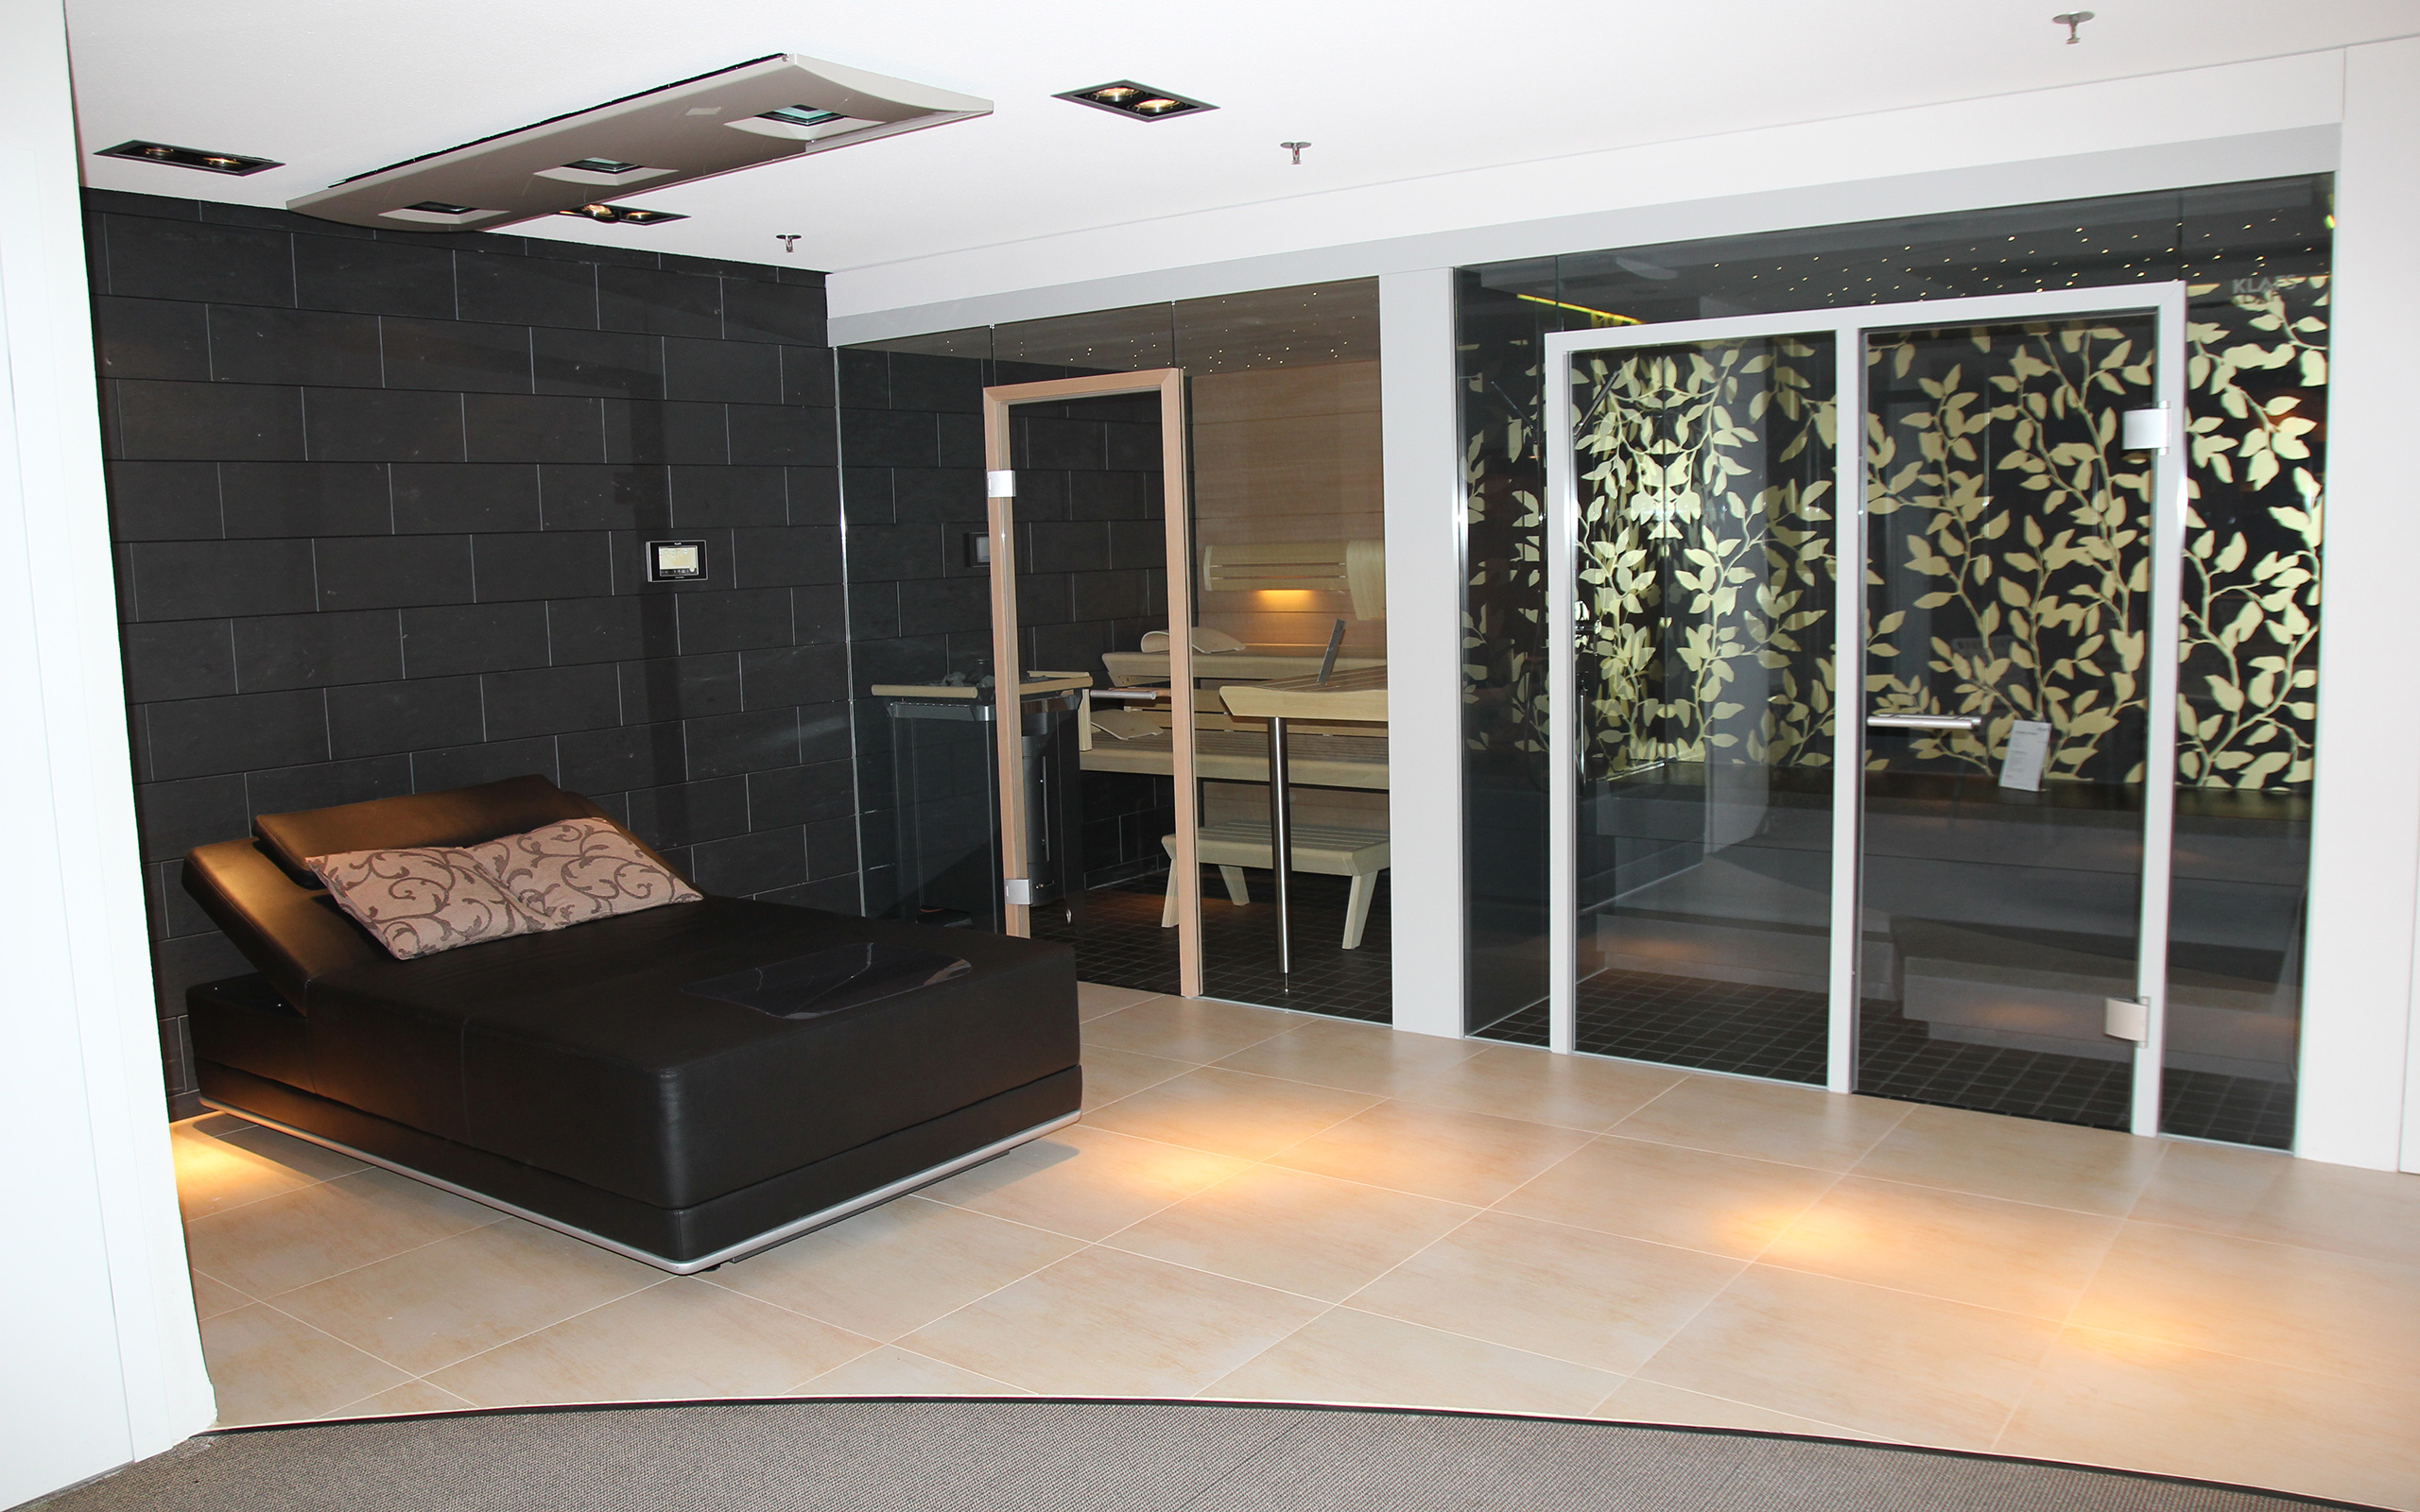 showroom schw bisch hall in house of sauna spa. Black Bedroom Furniture Sets. Home Design Ideas